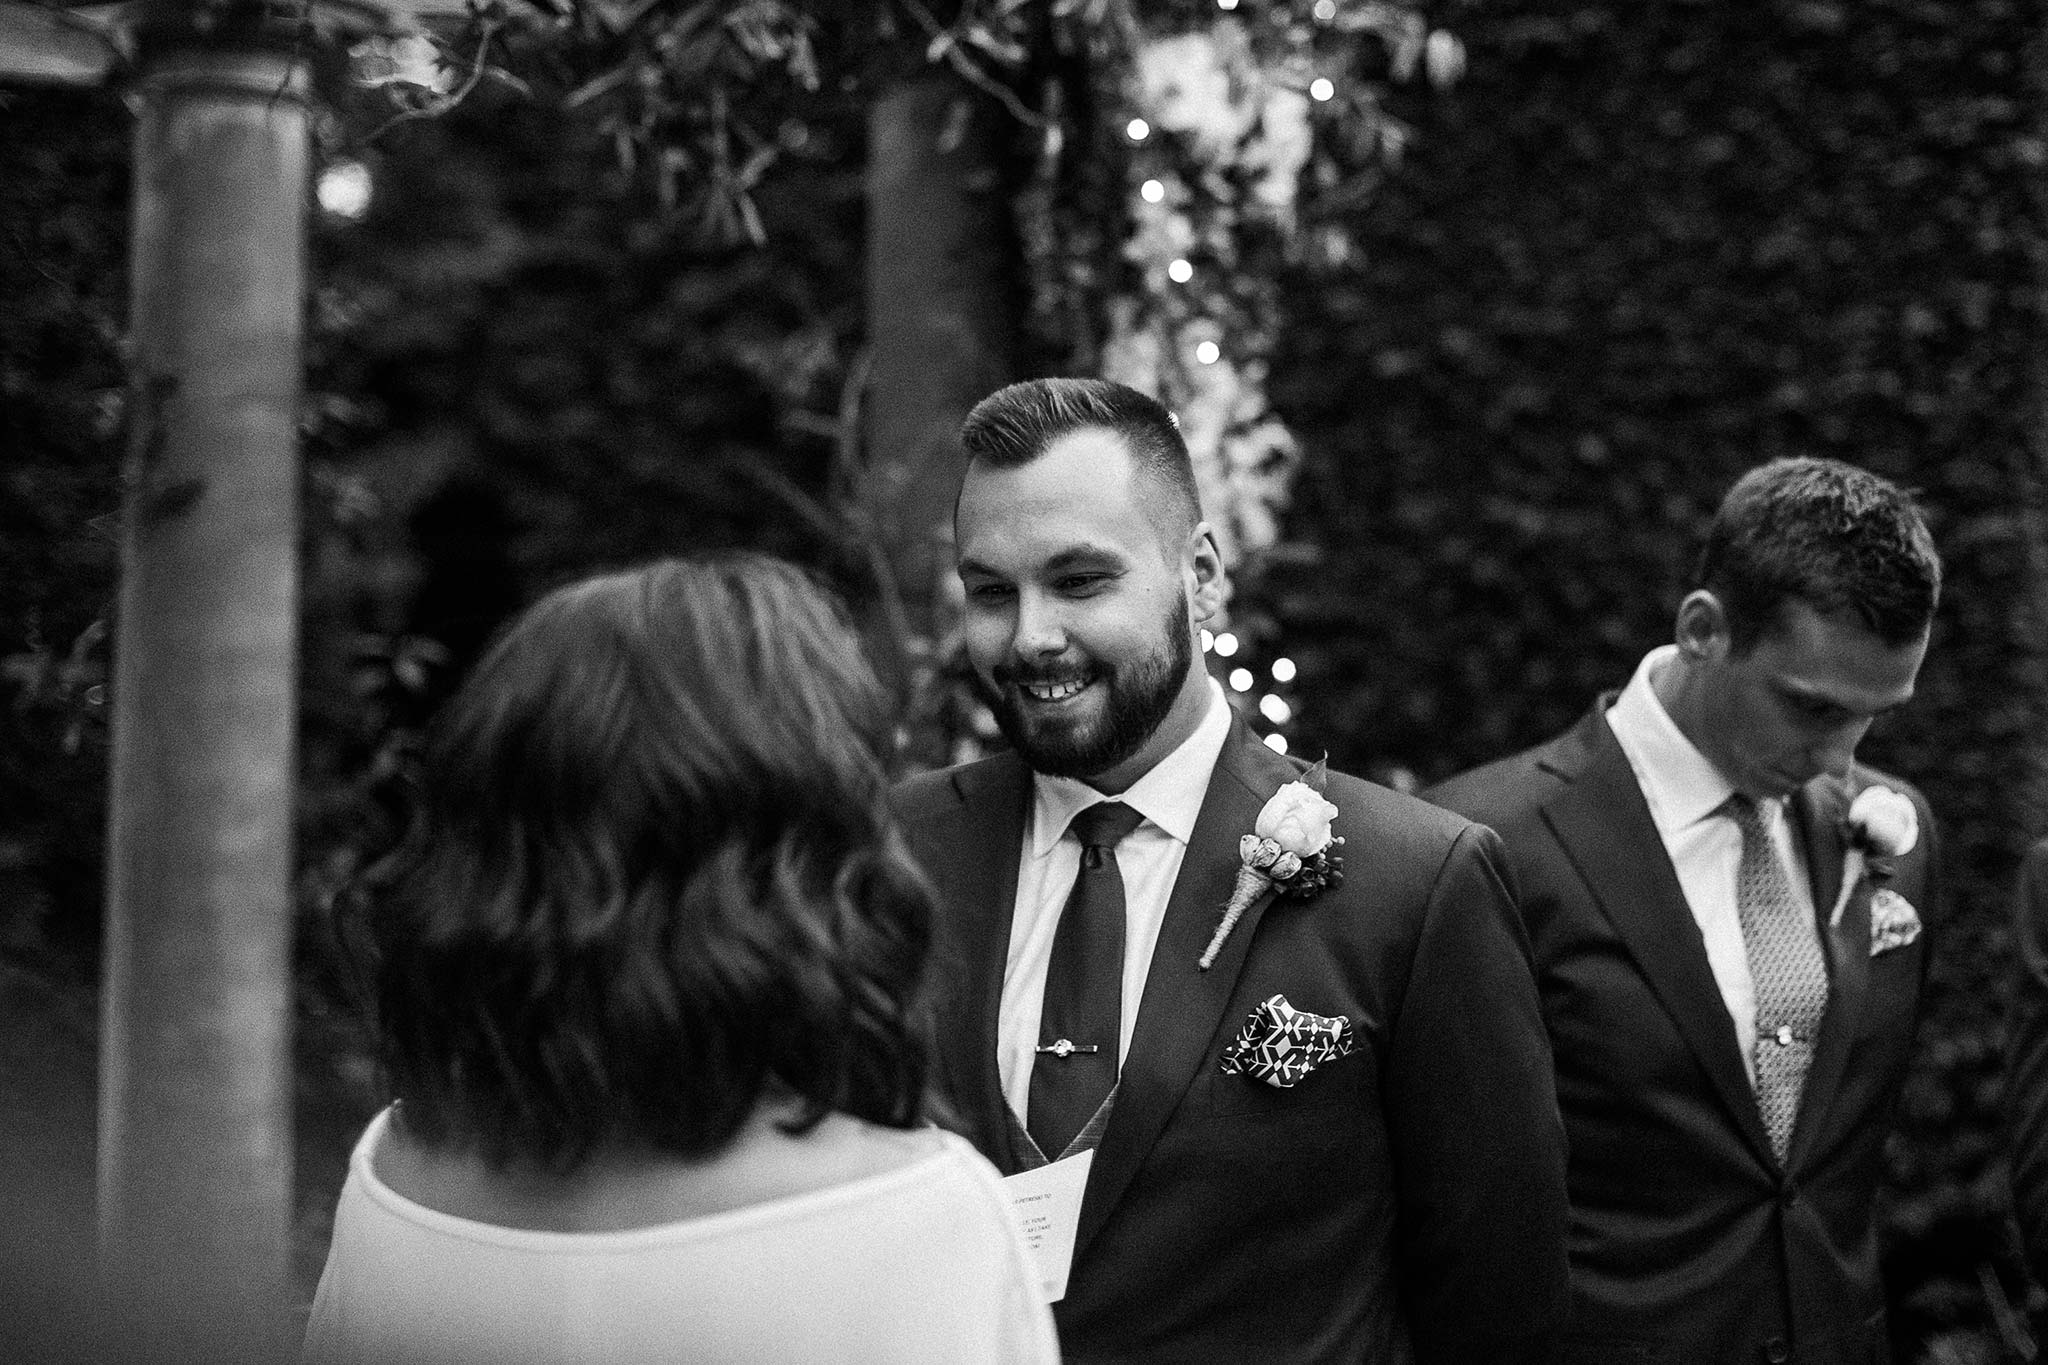 quat-quatta-night-wedding-ceremony-grooms-reaction